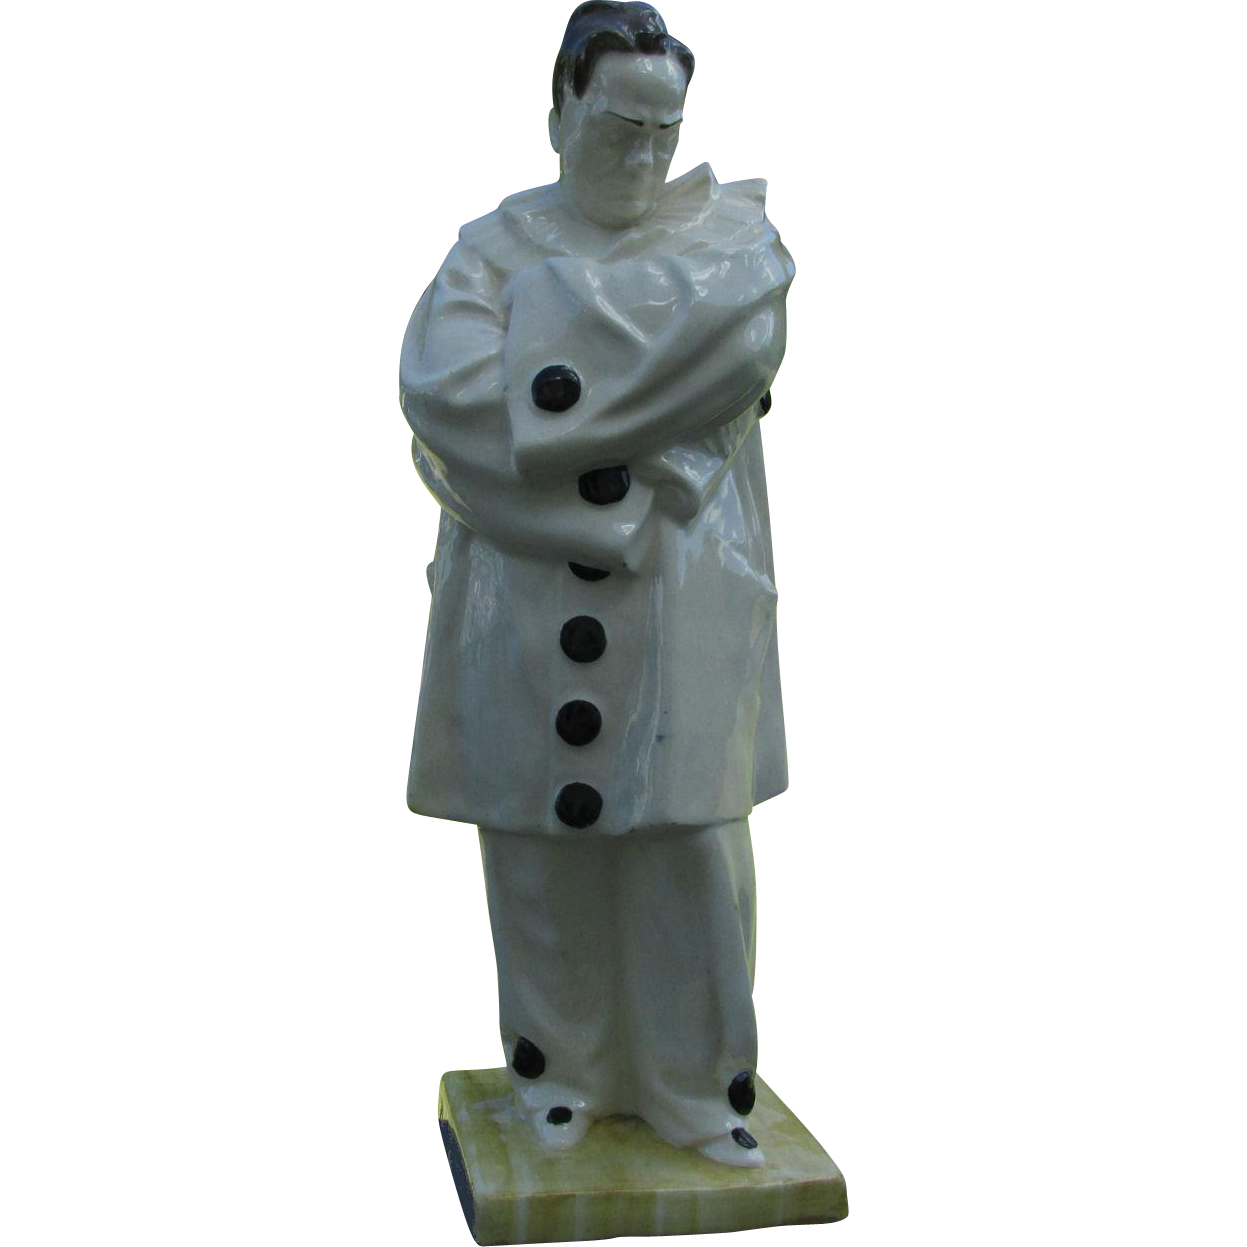 Rare Antique Faience Figurine of Pierrot, Enrico Caruso as Canio